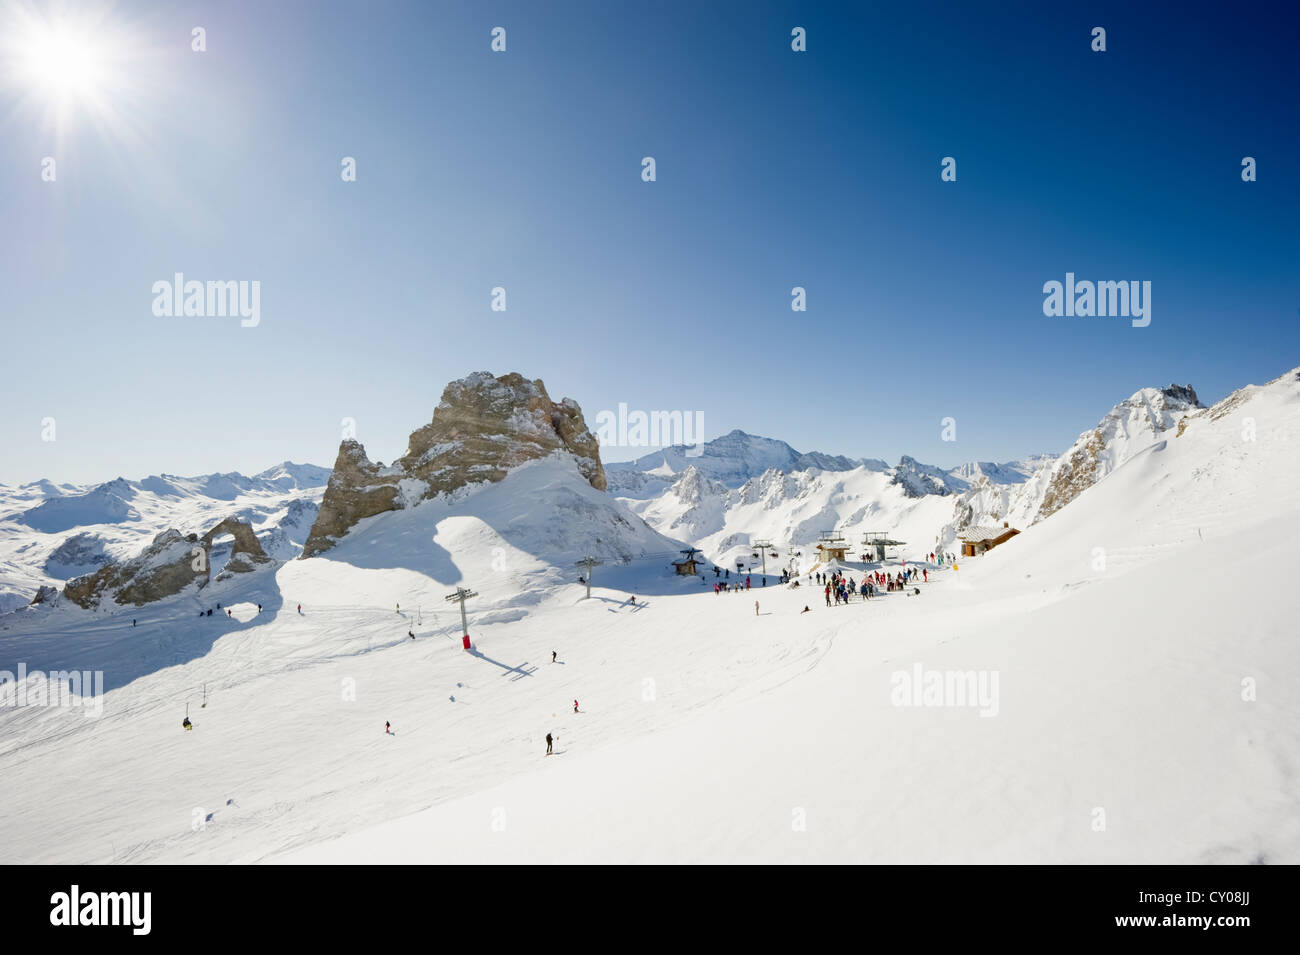 Snow-covered mountain landscape, Aiguille Percee, Tignes, Val d'Isere, Savoie, Alps, France, Europe - Stock Image